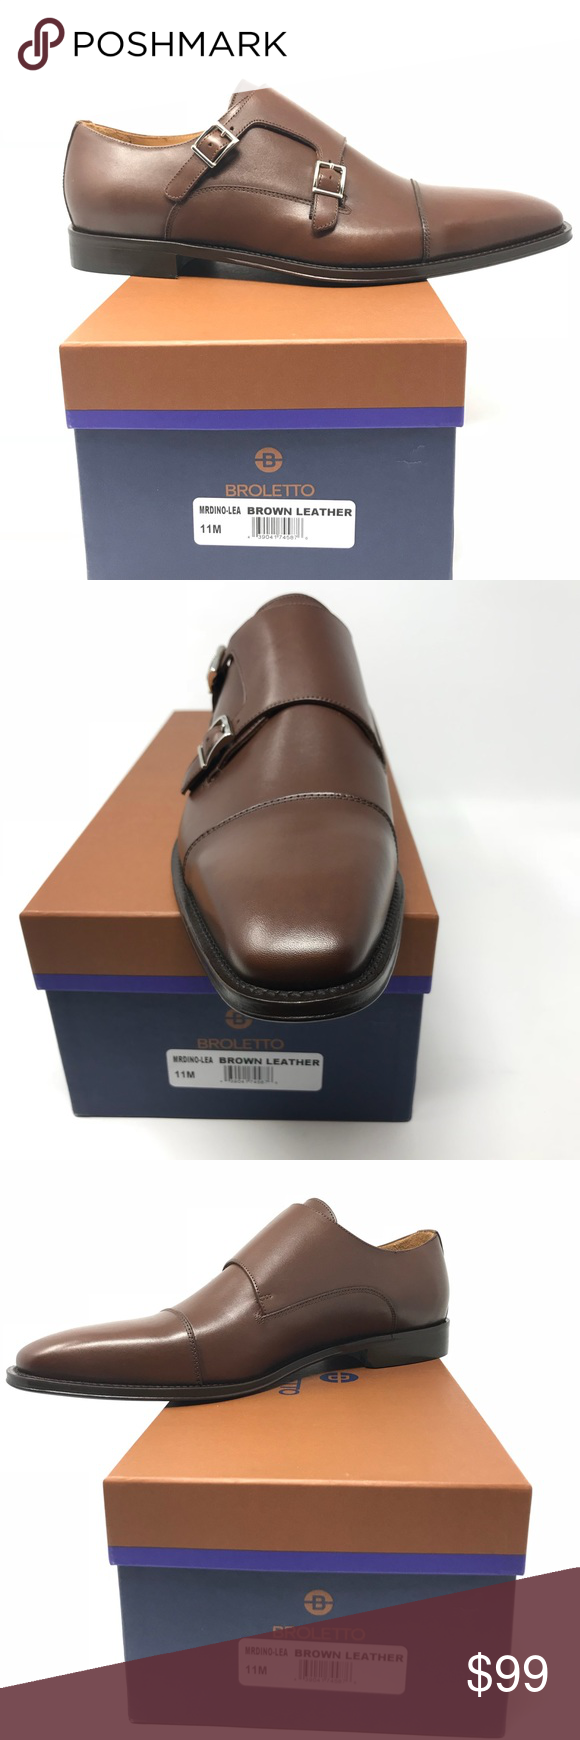 233960ba1bb Broletto Italian Leather Men s Shoes Broletto Mens Brown Leather Shoes Size  11 M New Made In Italy Double Monk Strap Box Included Please see all  pictures.